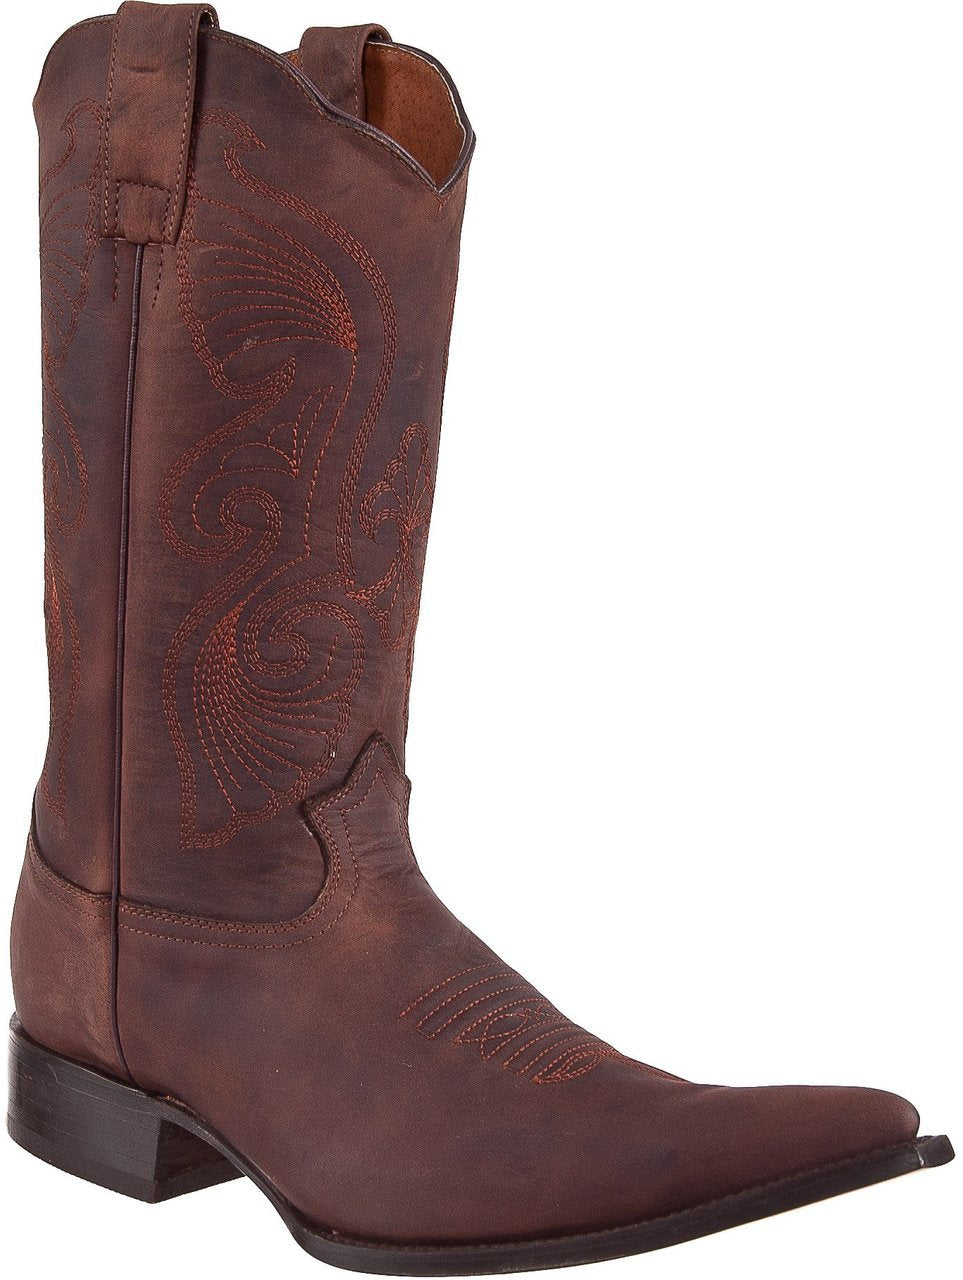 BLACK STONE Men's Golden Brown Cowboy Boots - Ch Toe